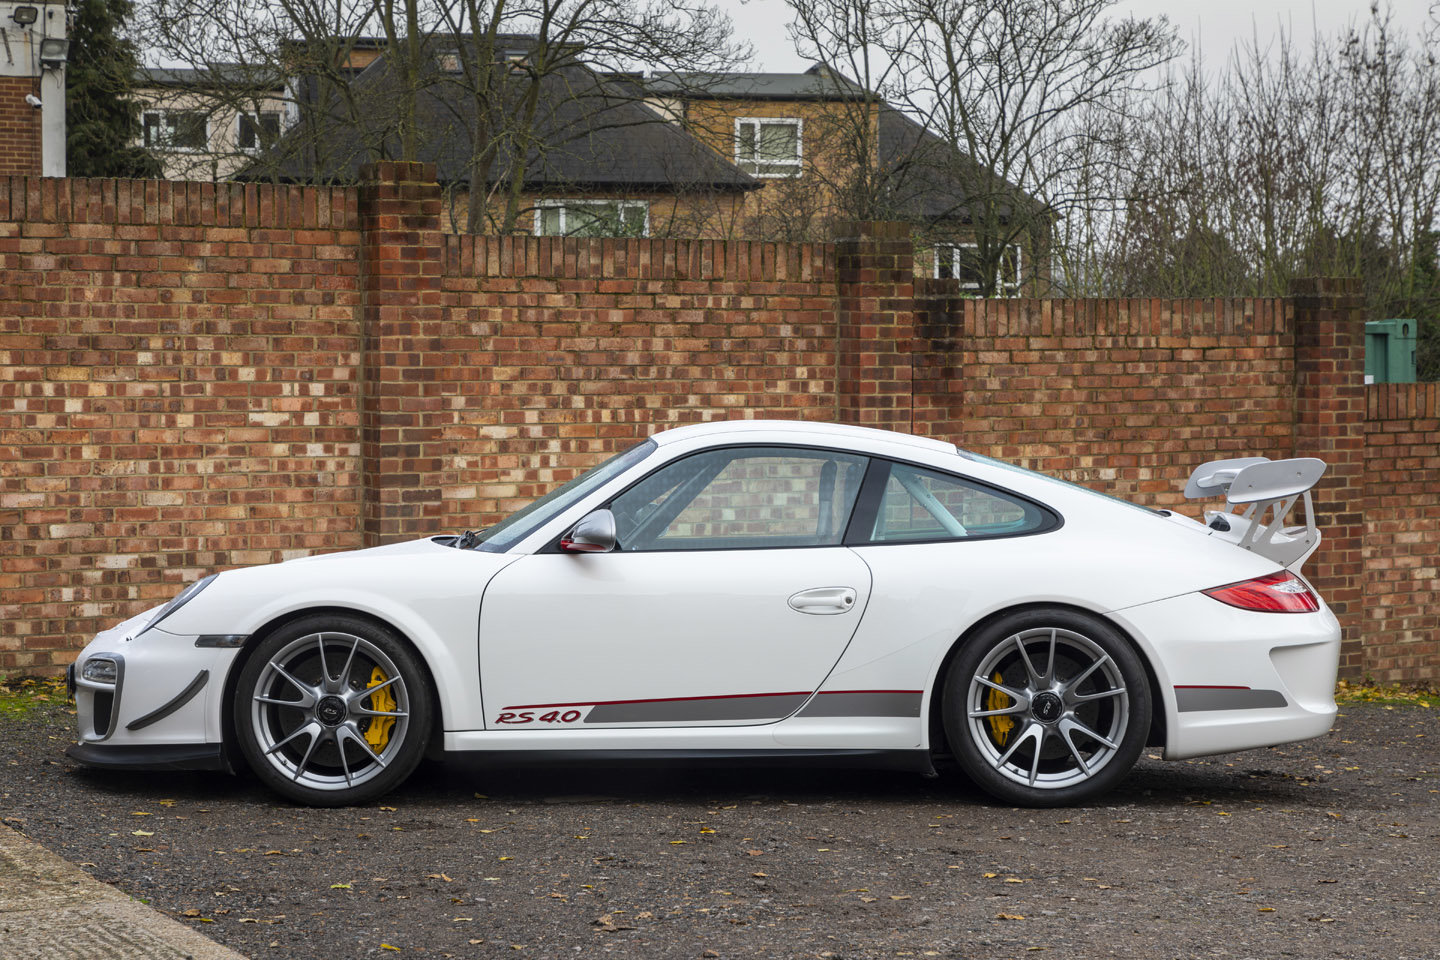 2011-PORSCHE 997 GEN II GT3 RS 4.0 GRANDPRIX WHITE -  For Sale (picture 2 of 6)